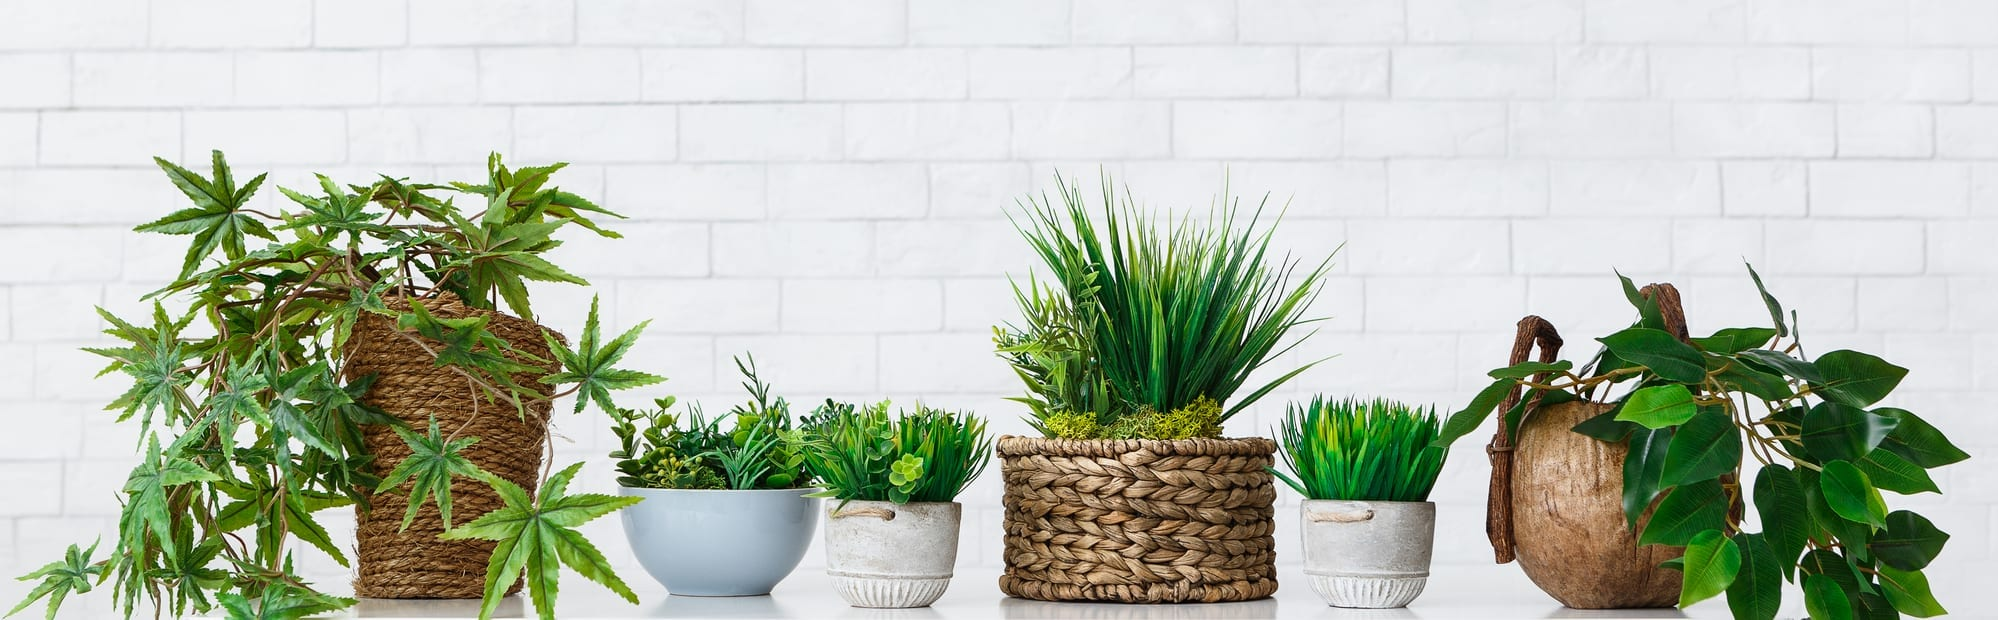 Potted plants against a white background